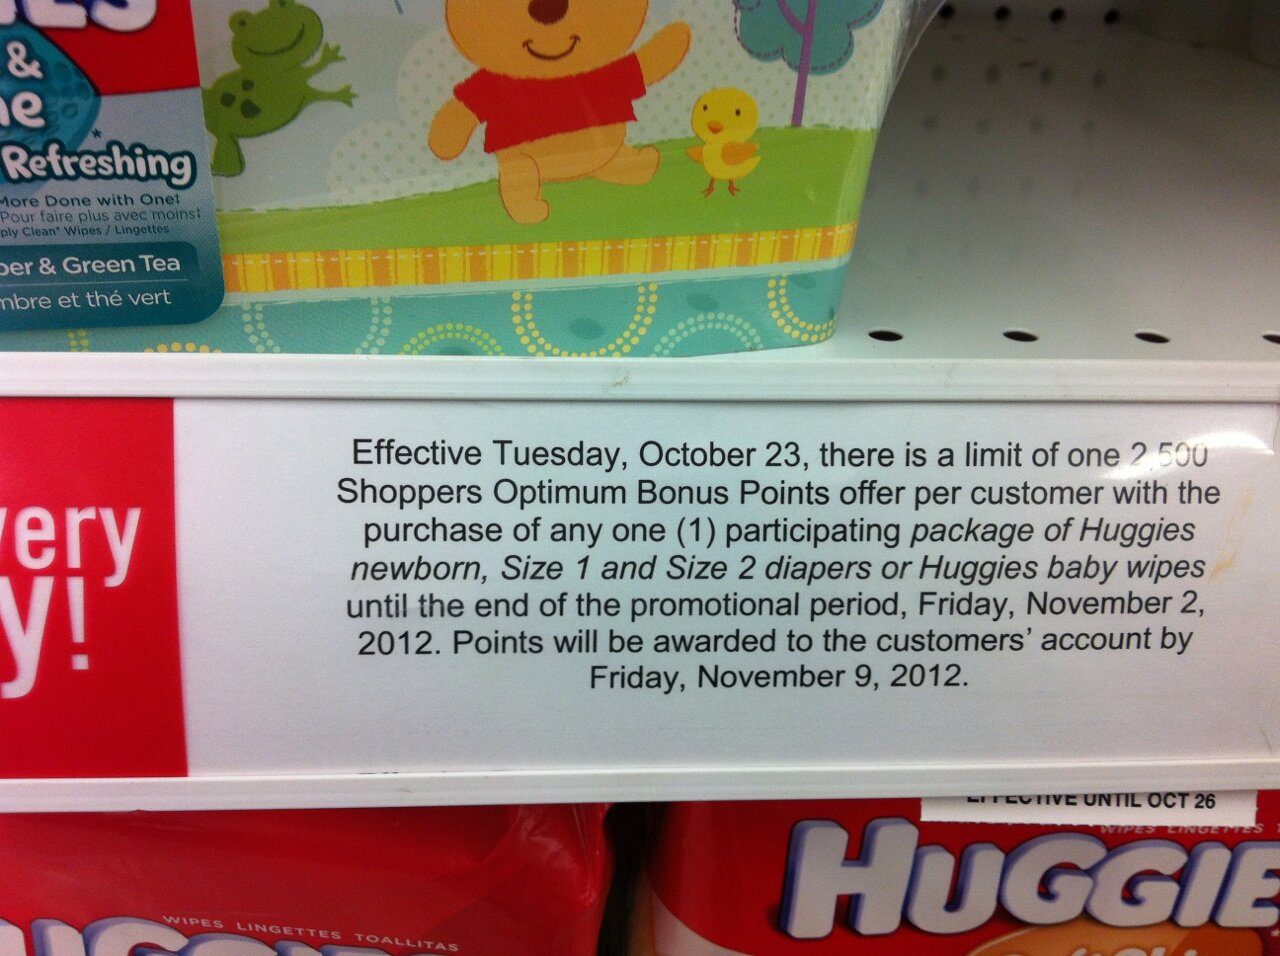 HUGGIES TUB FRENZY!